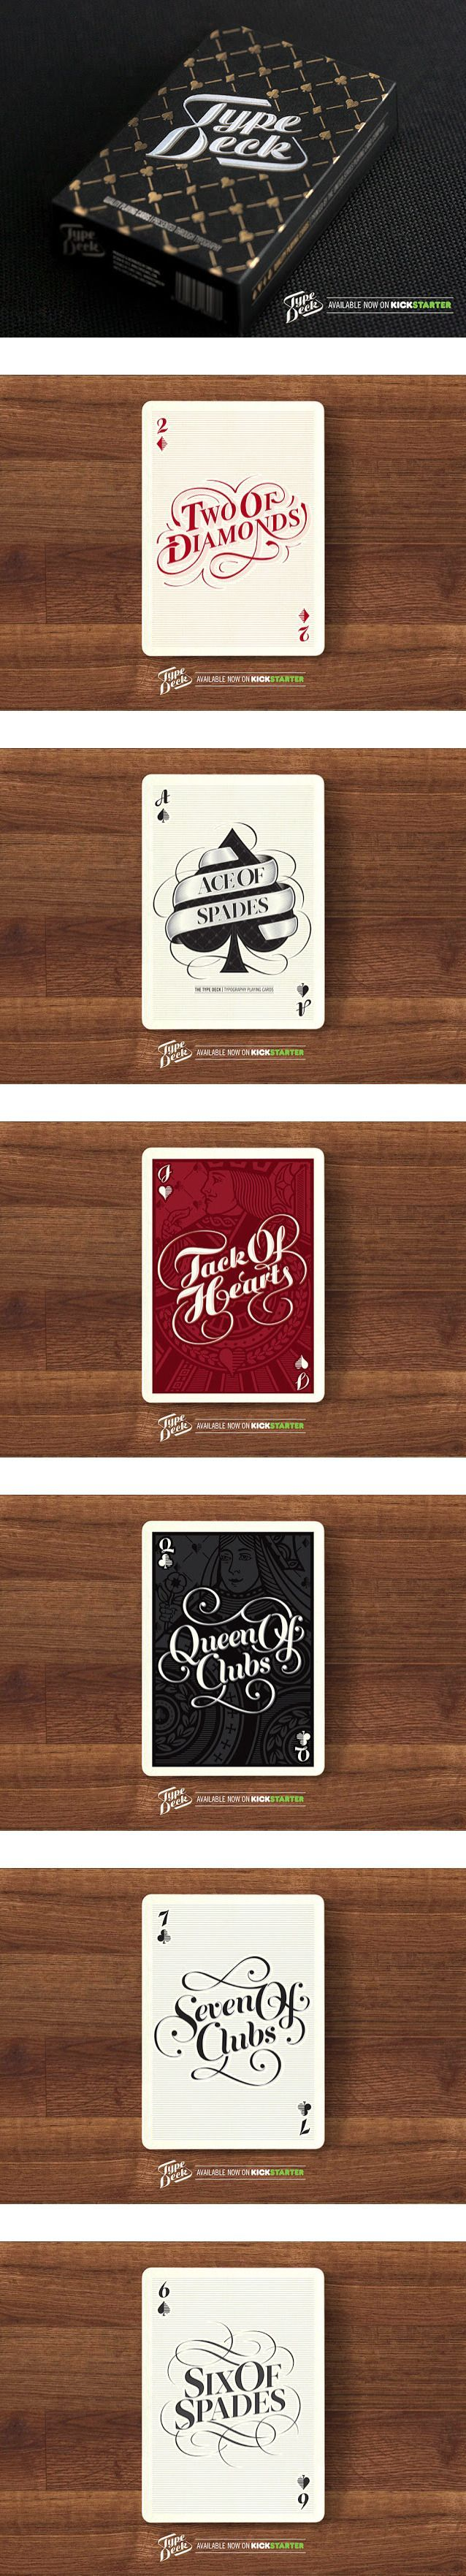 Lettering & Typography Designs | From up North